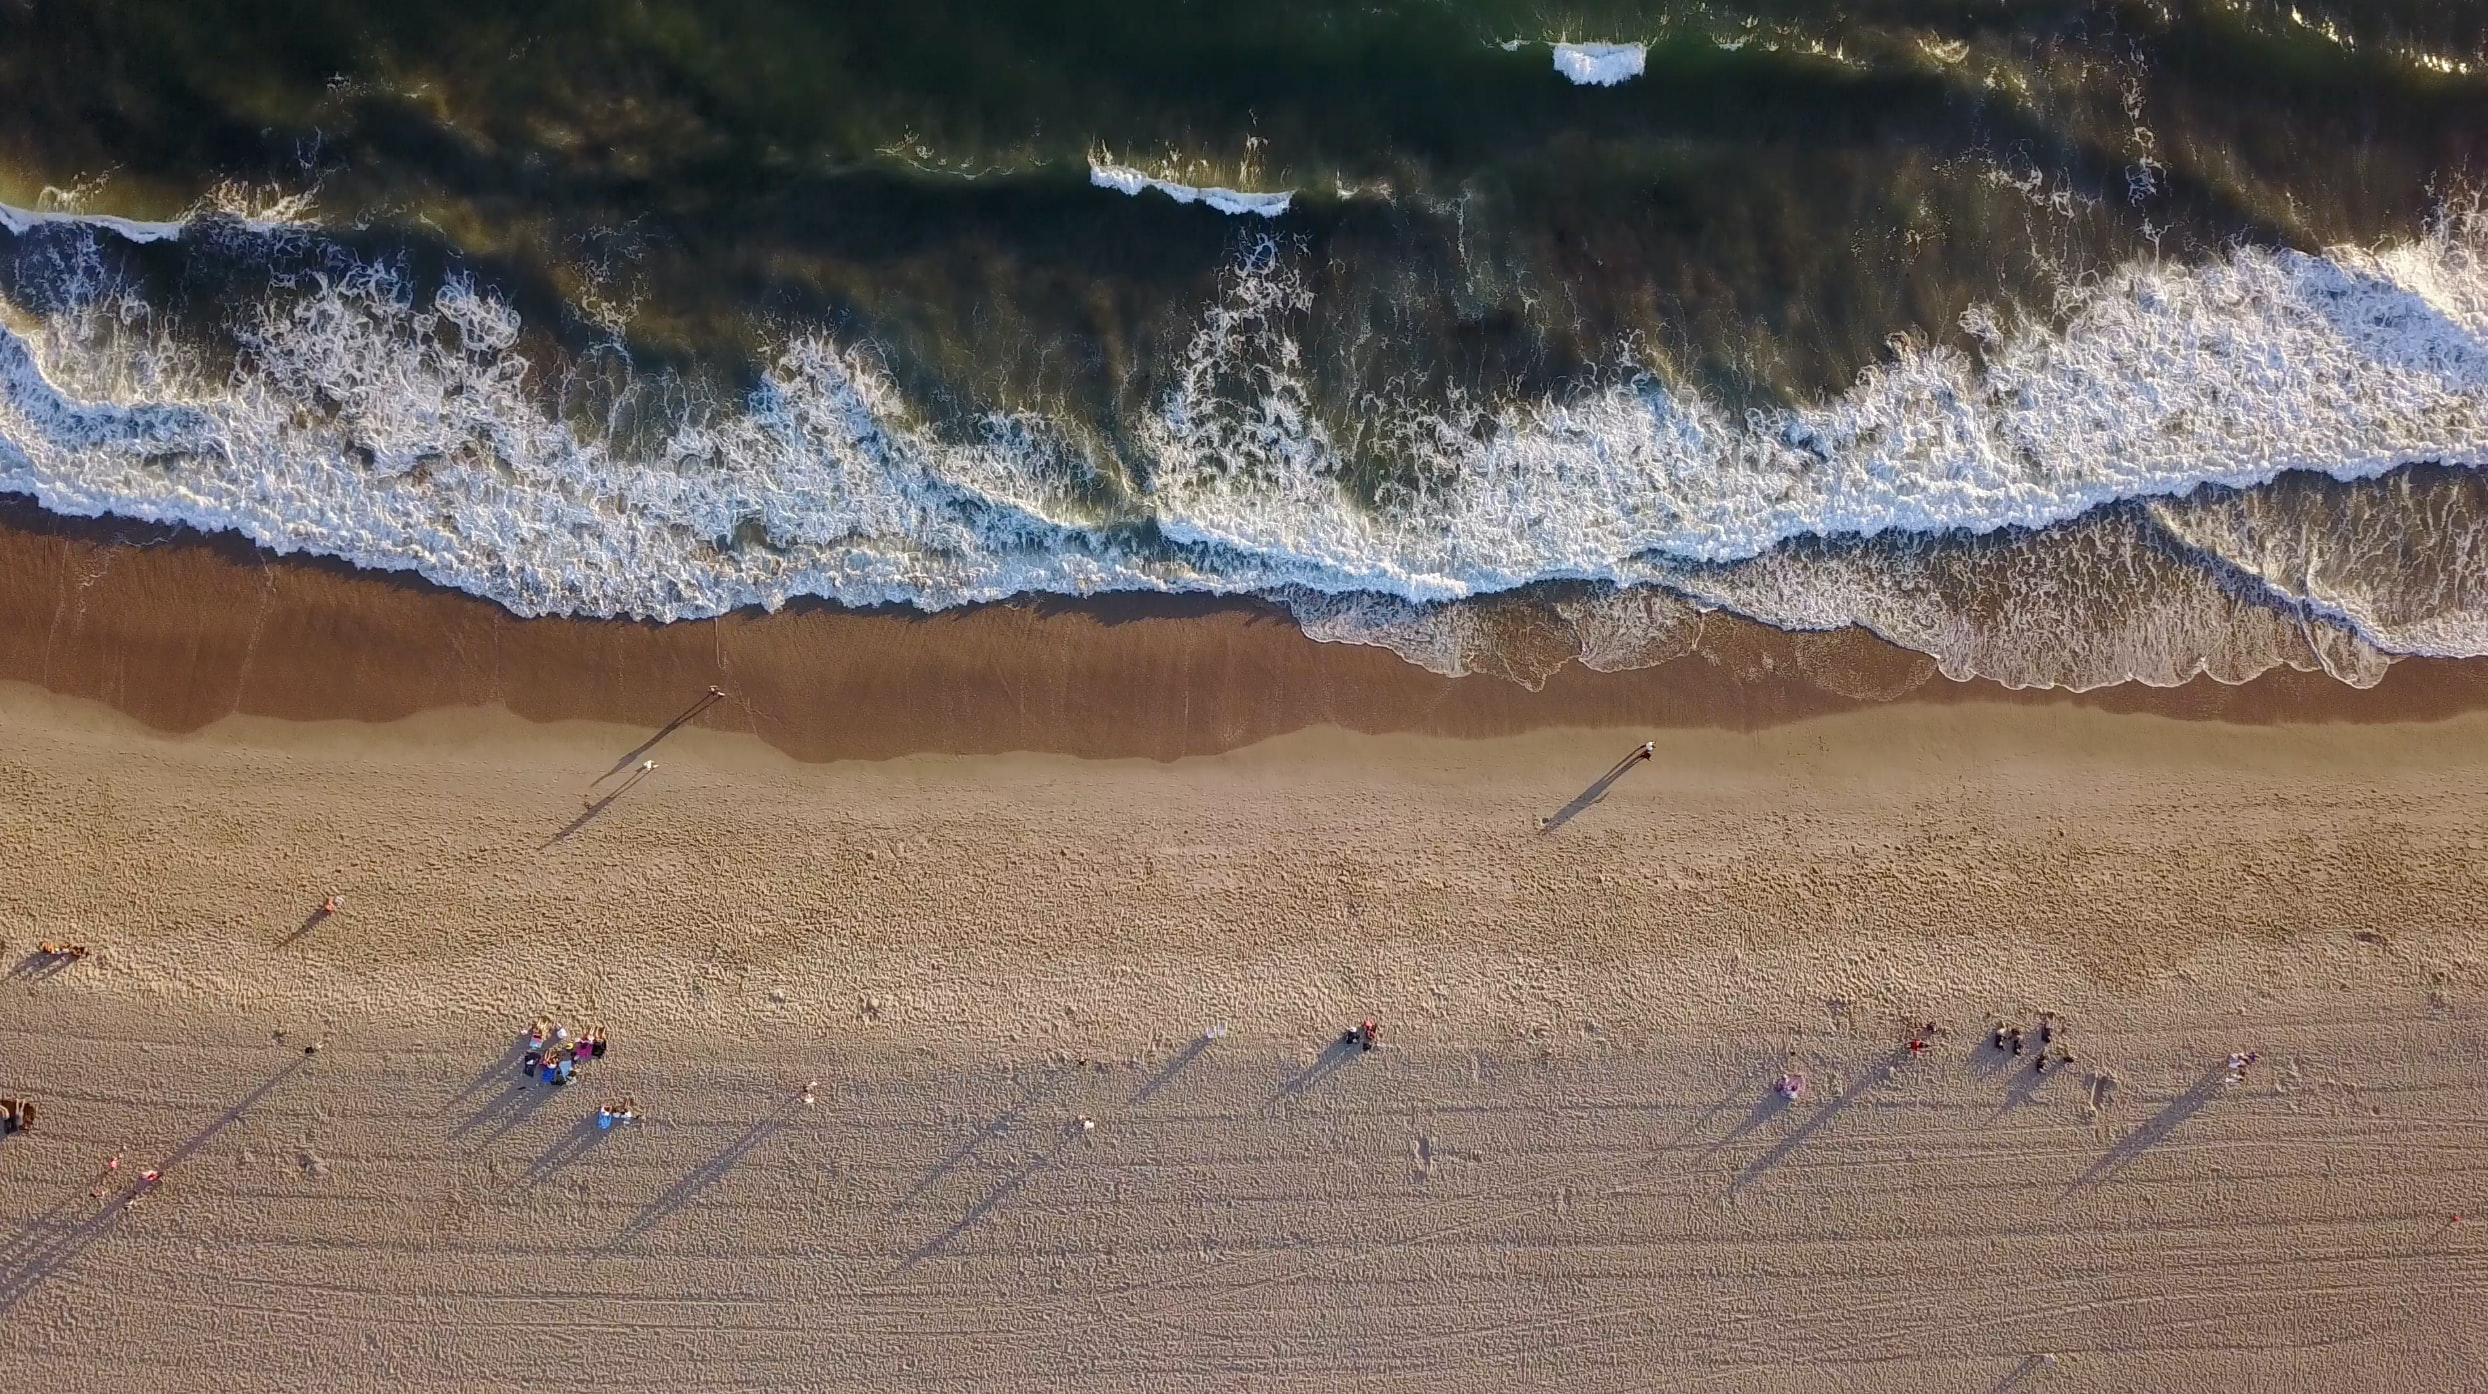 Drone view of people on the sandy Venice Beach coastline